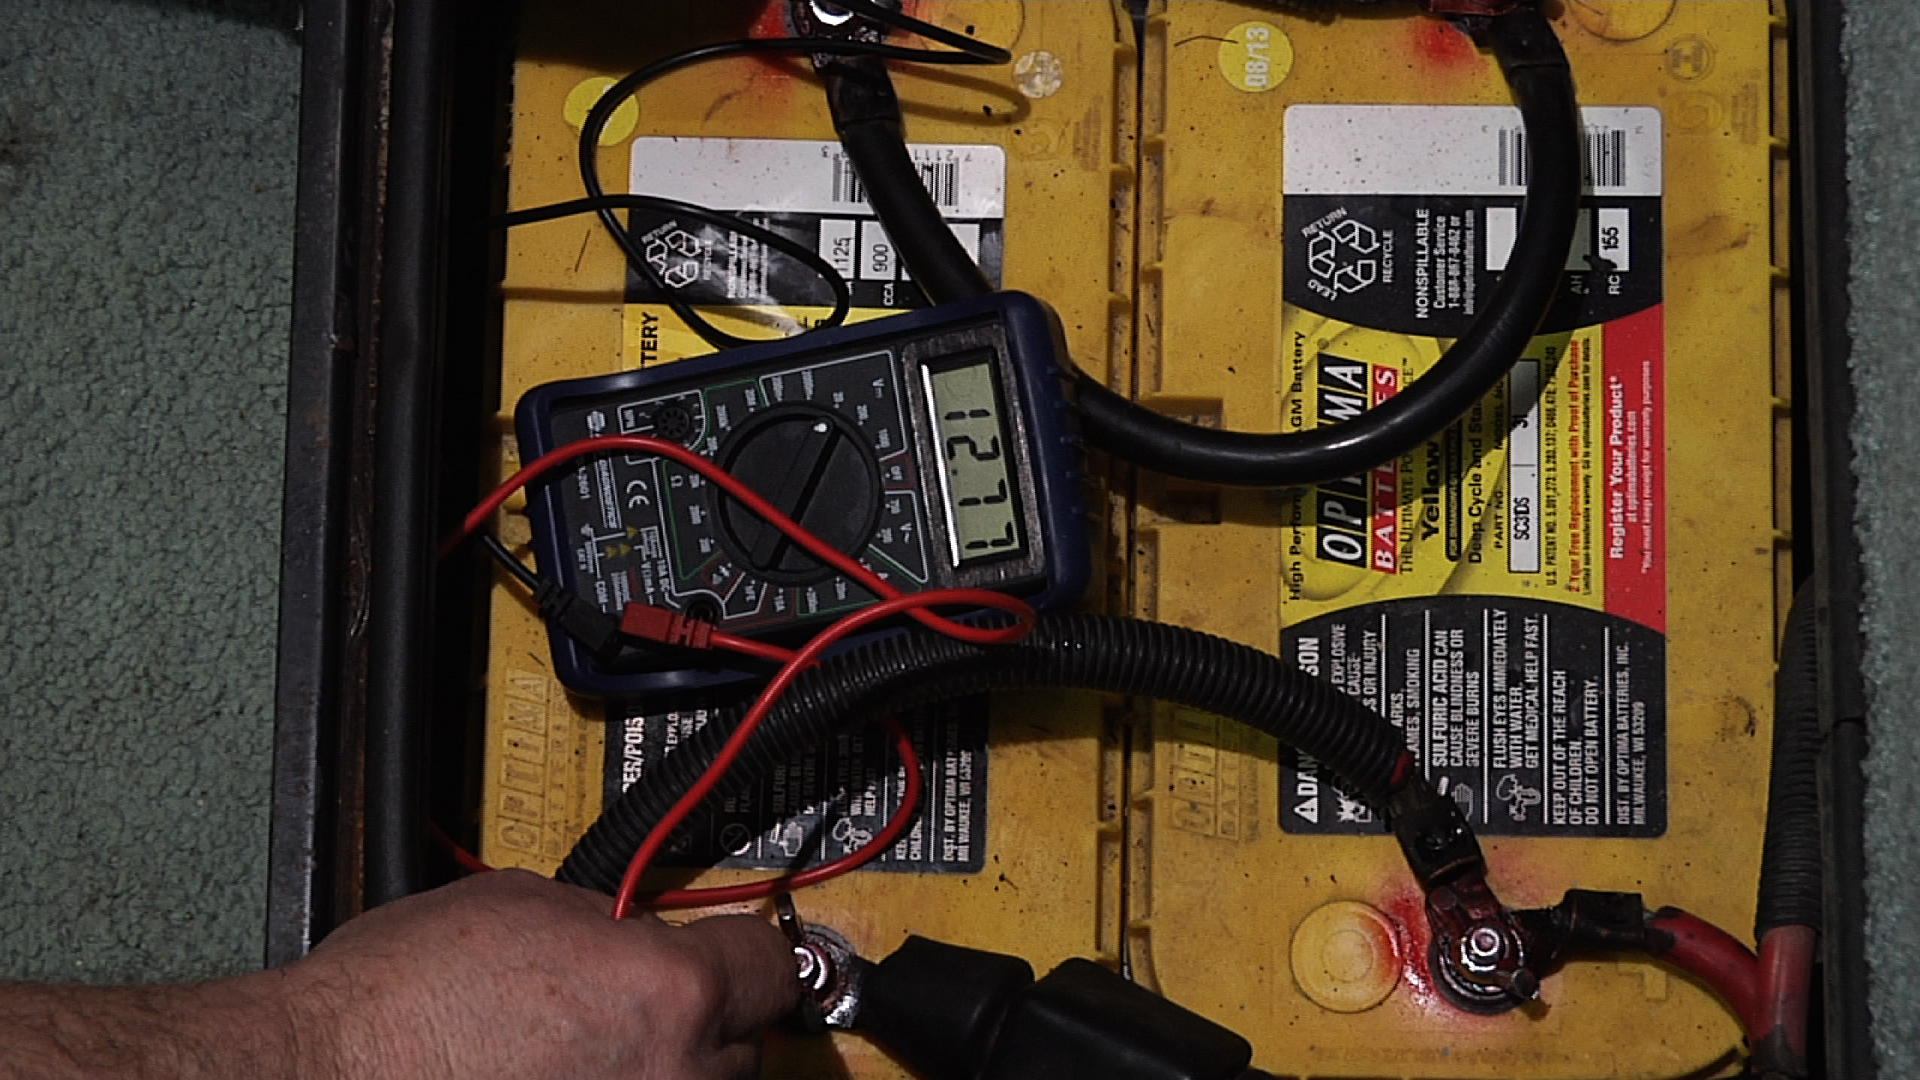 Rv Battery Maintenance Testing House Batteries Wiring Diagram Needed System Check And Control Box Owners